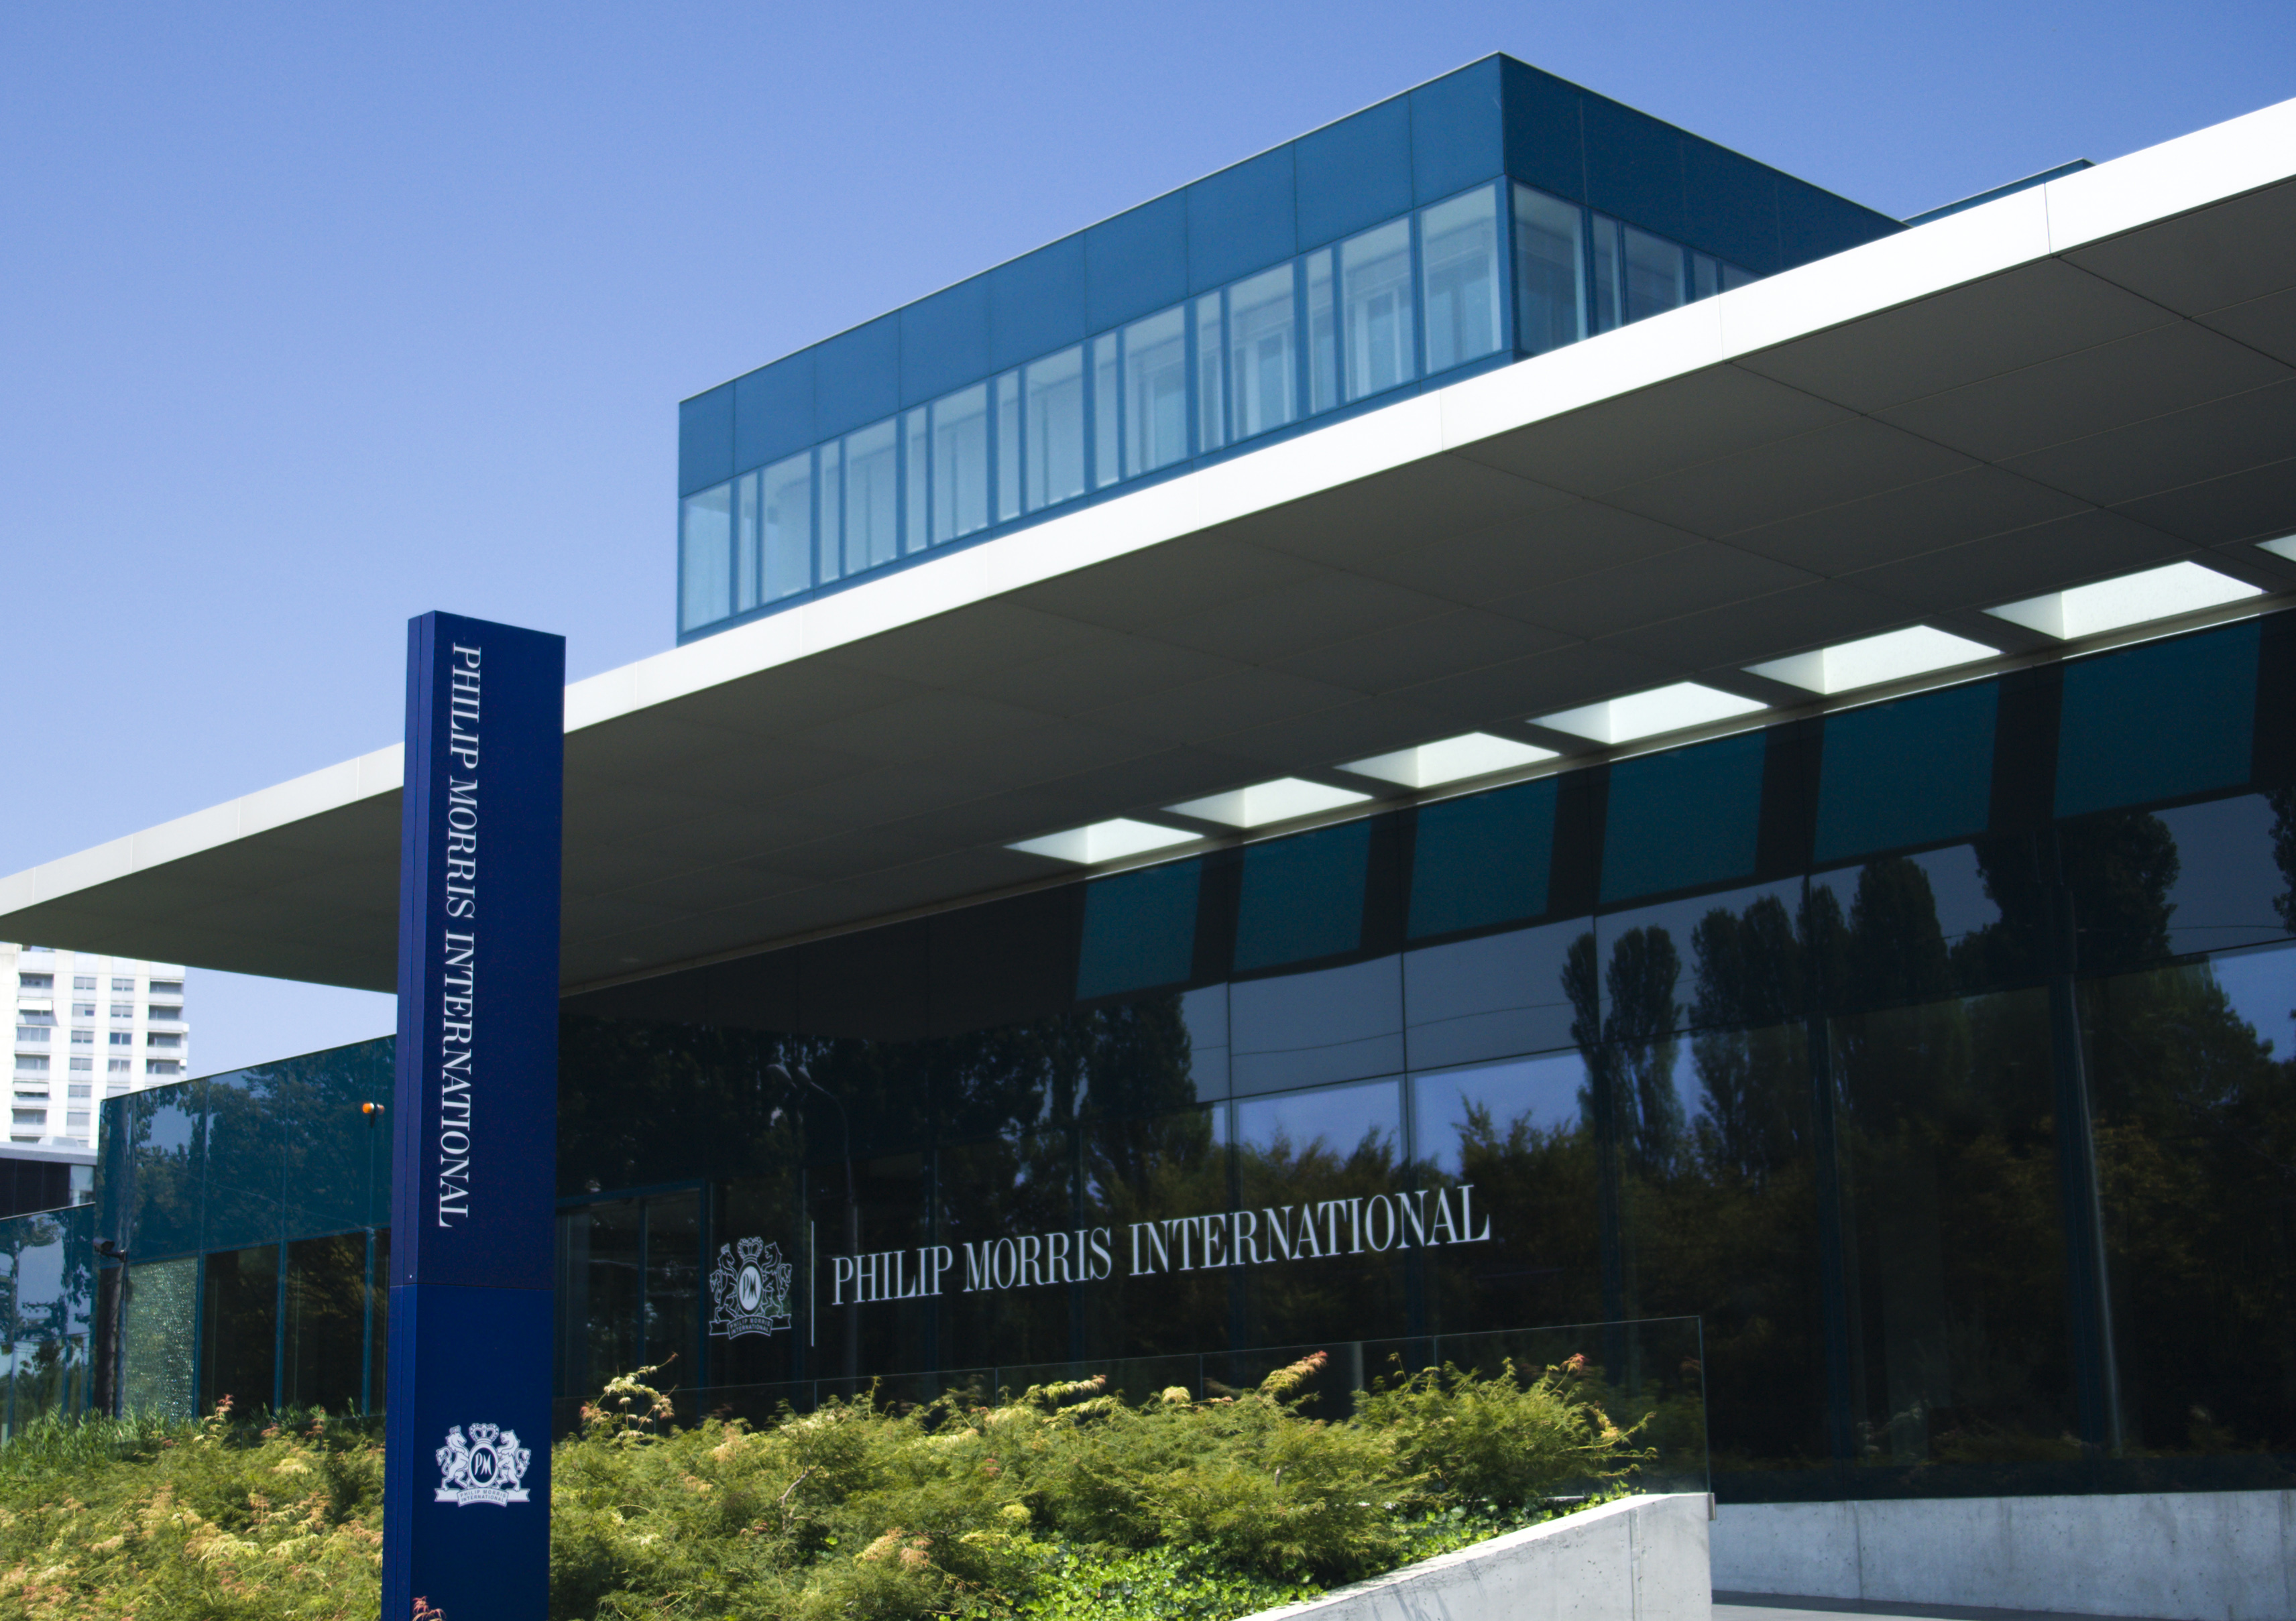 Philip Morris International Operation Center is pictured in Lausanne August 19, 2009. Philip Morris International (PMI) is the leading international tobacco company, with products sold in approximately 160 countries. REUTERS/Denis Balibouse/Files